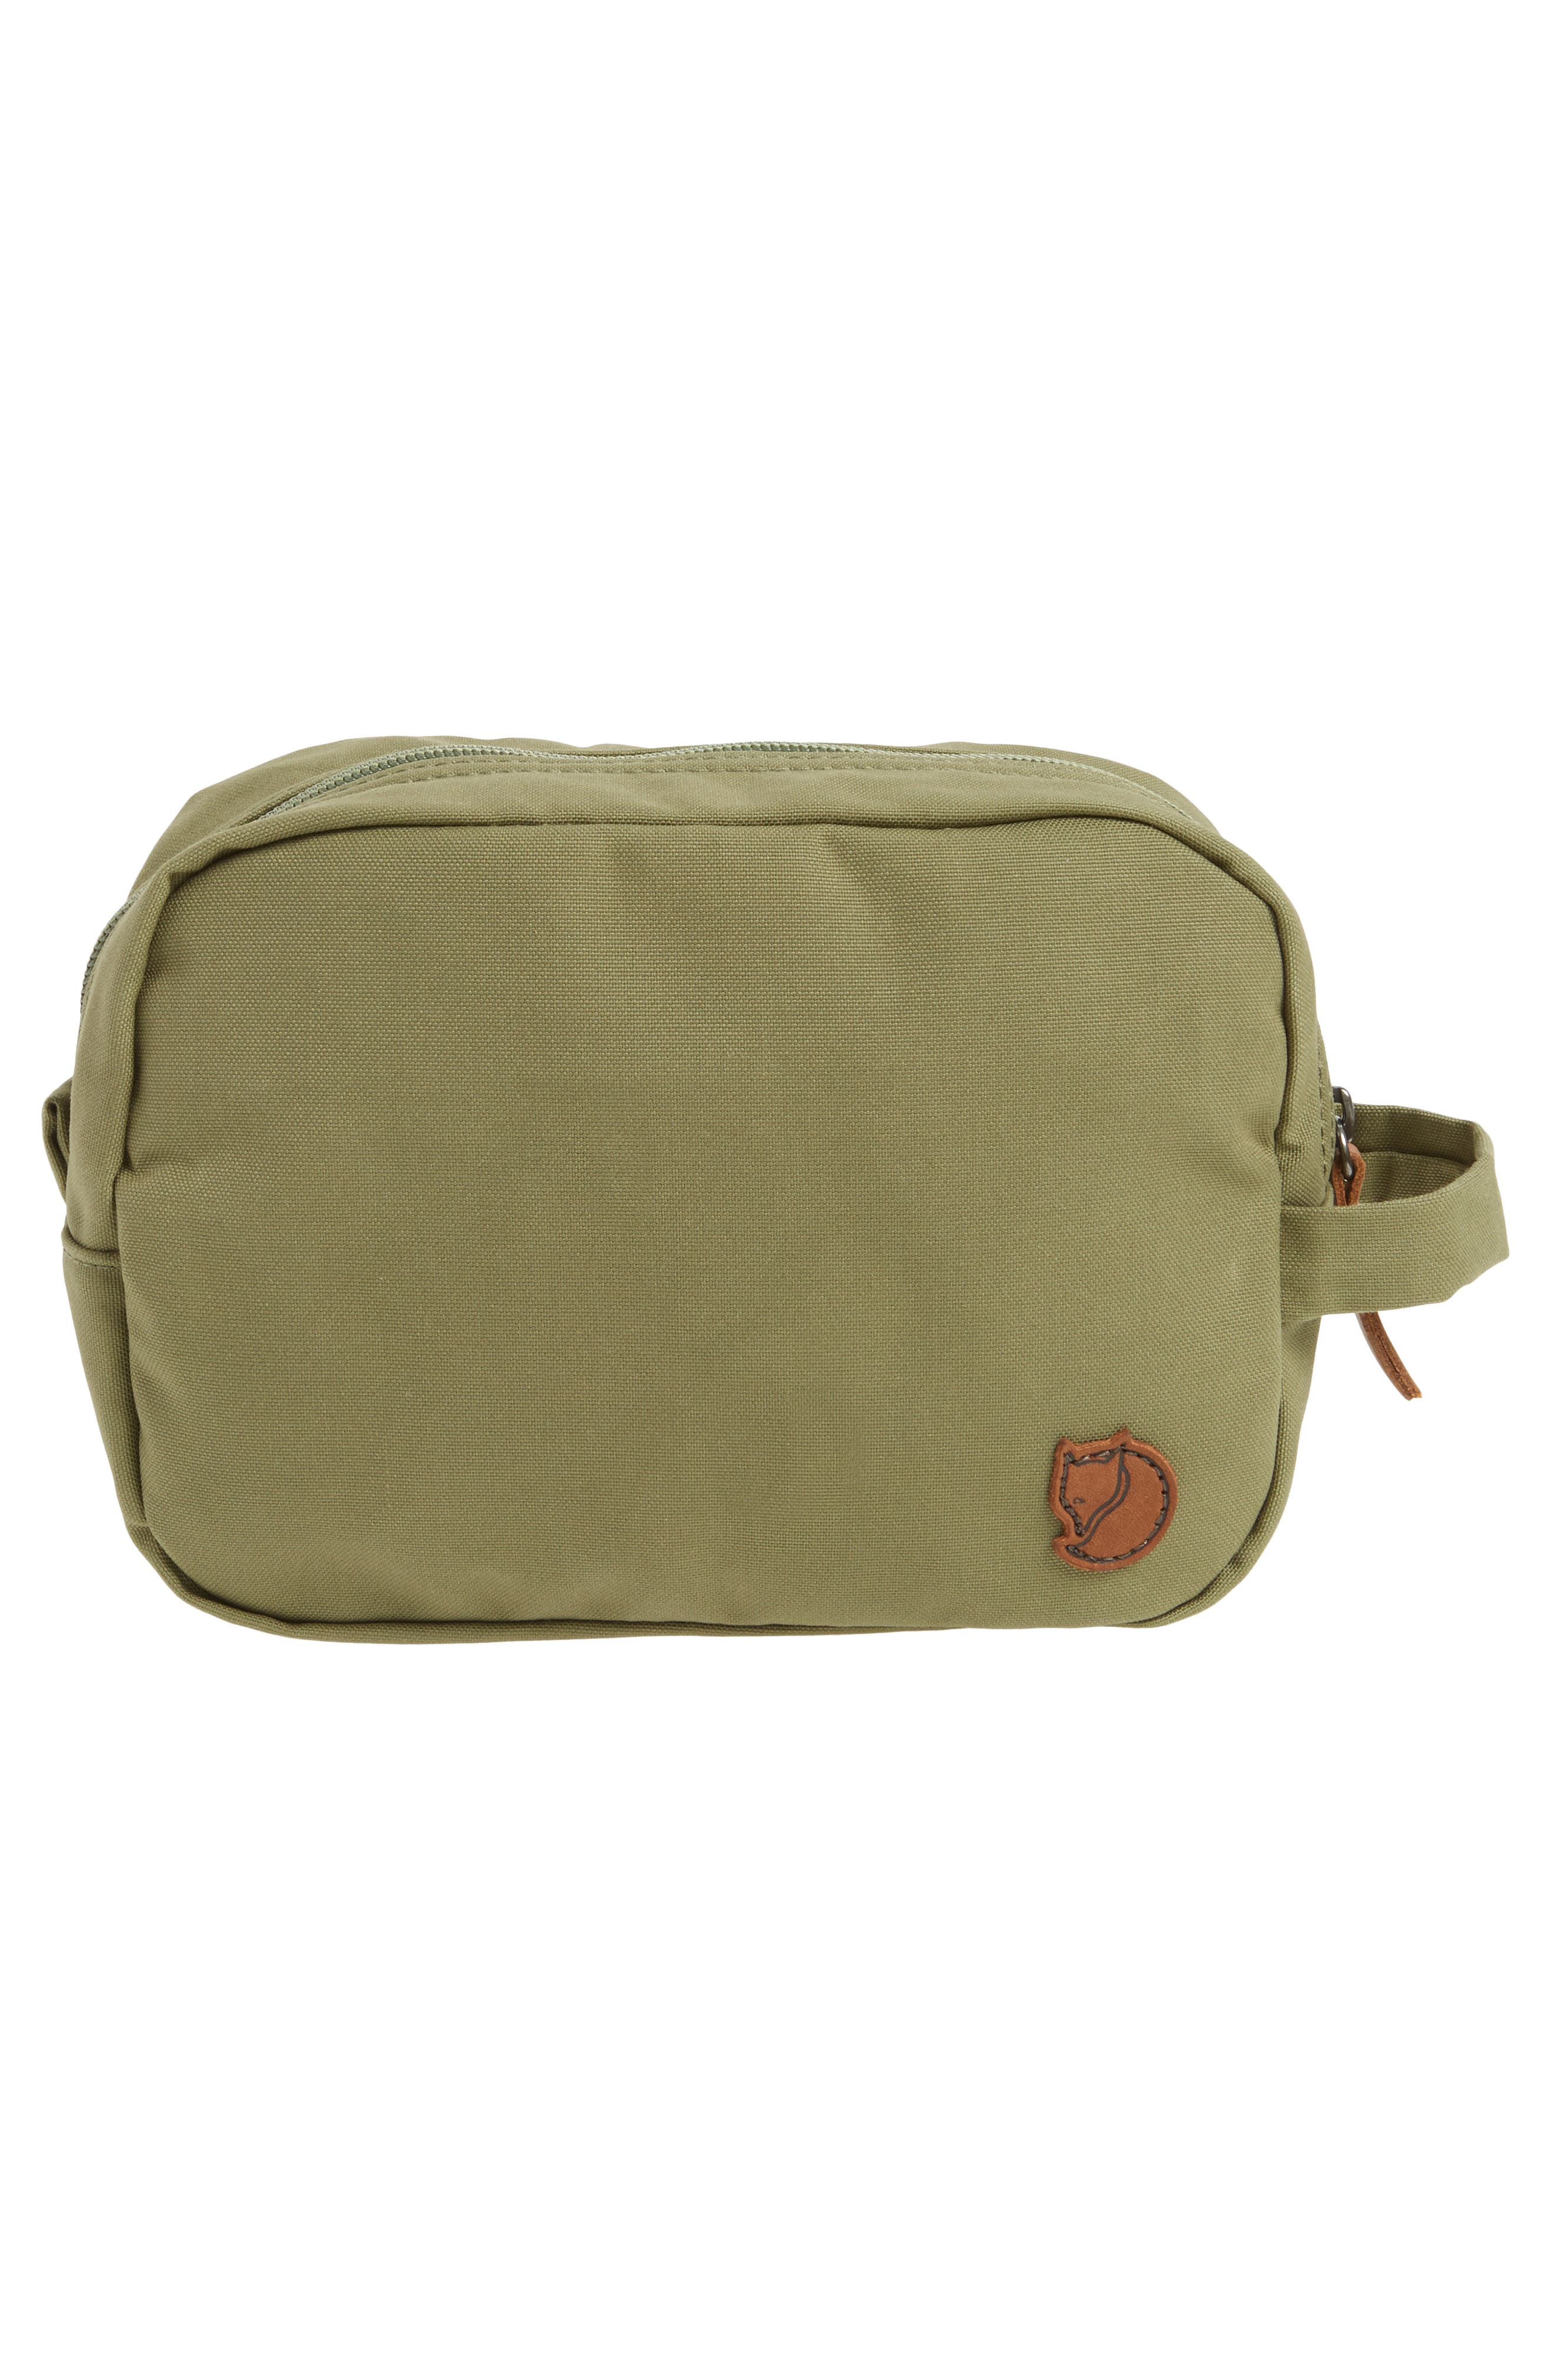 Water Resistant Gear Bag Pouch,                         Main,                         color, Green